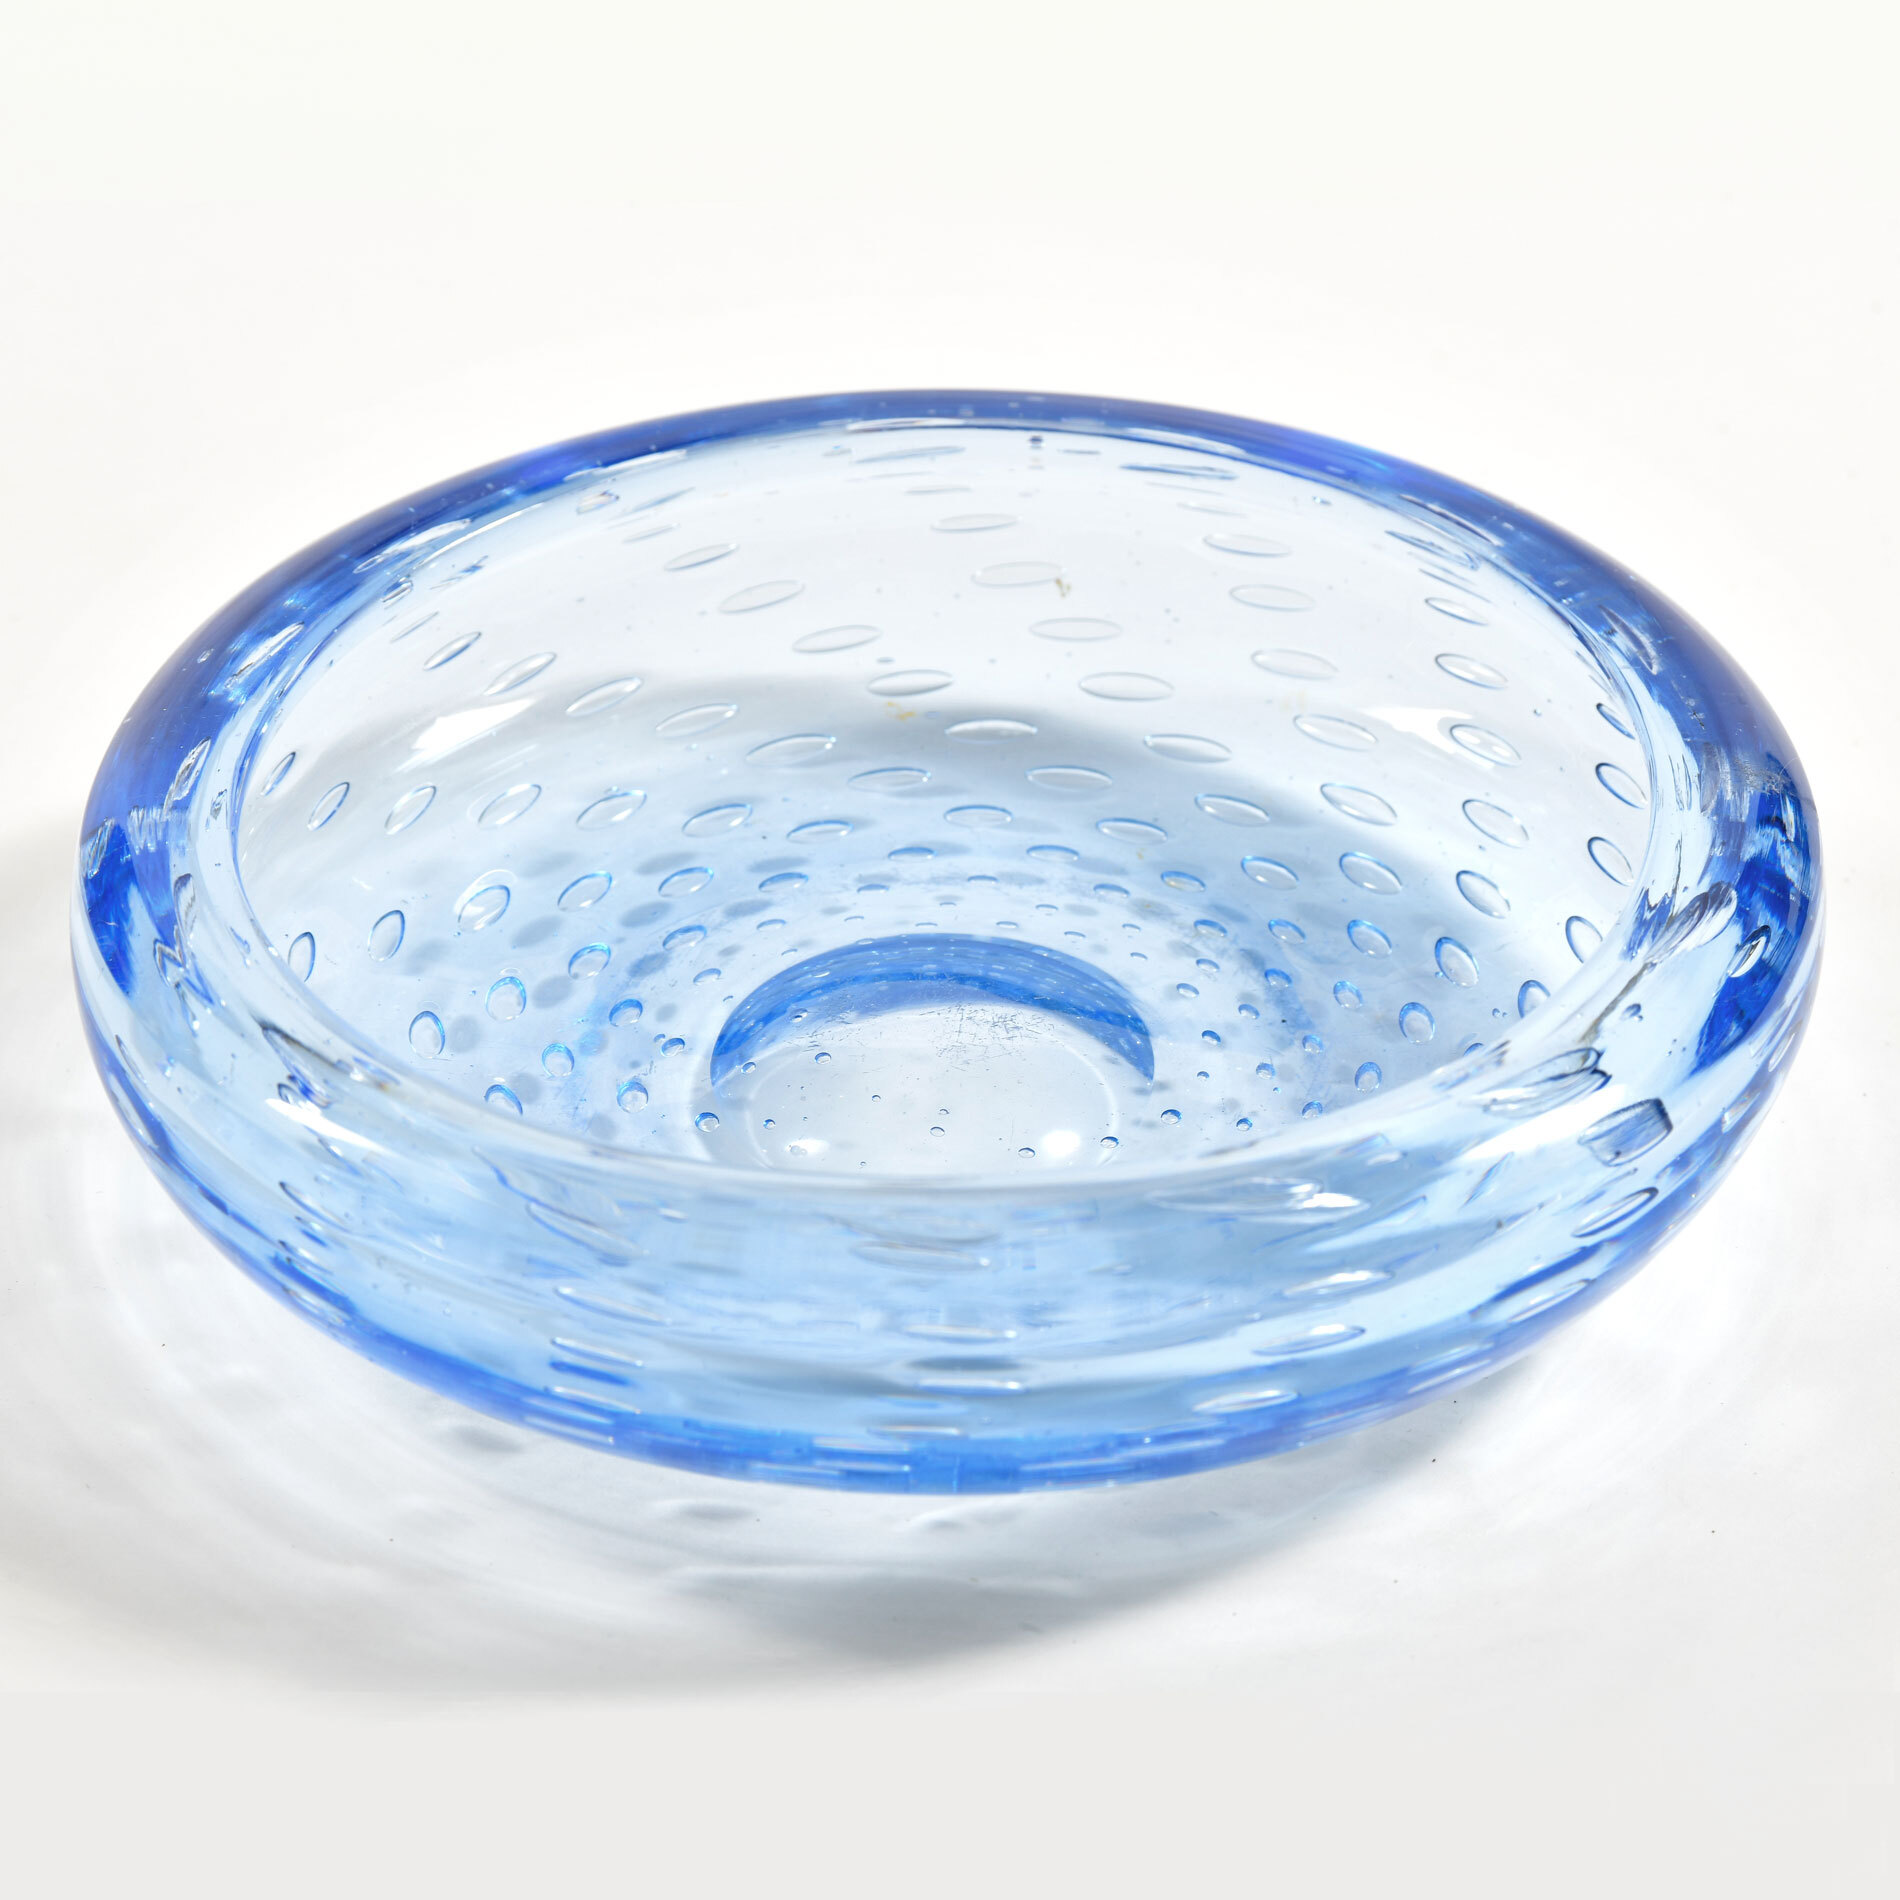 The image for Mid Centruy Blue Murano Bowl 01